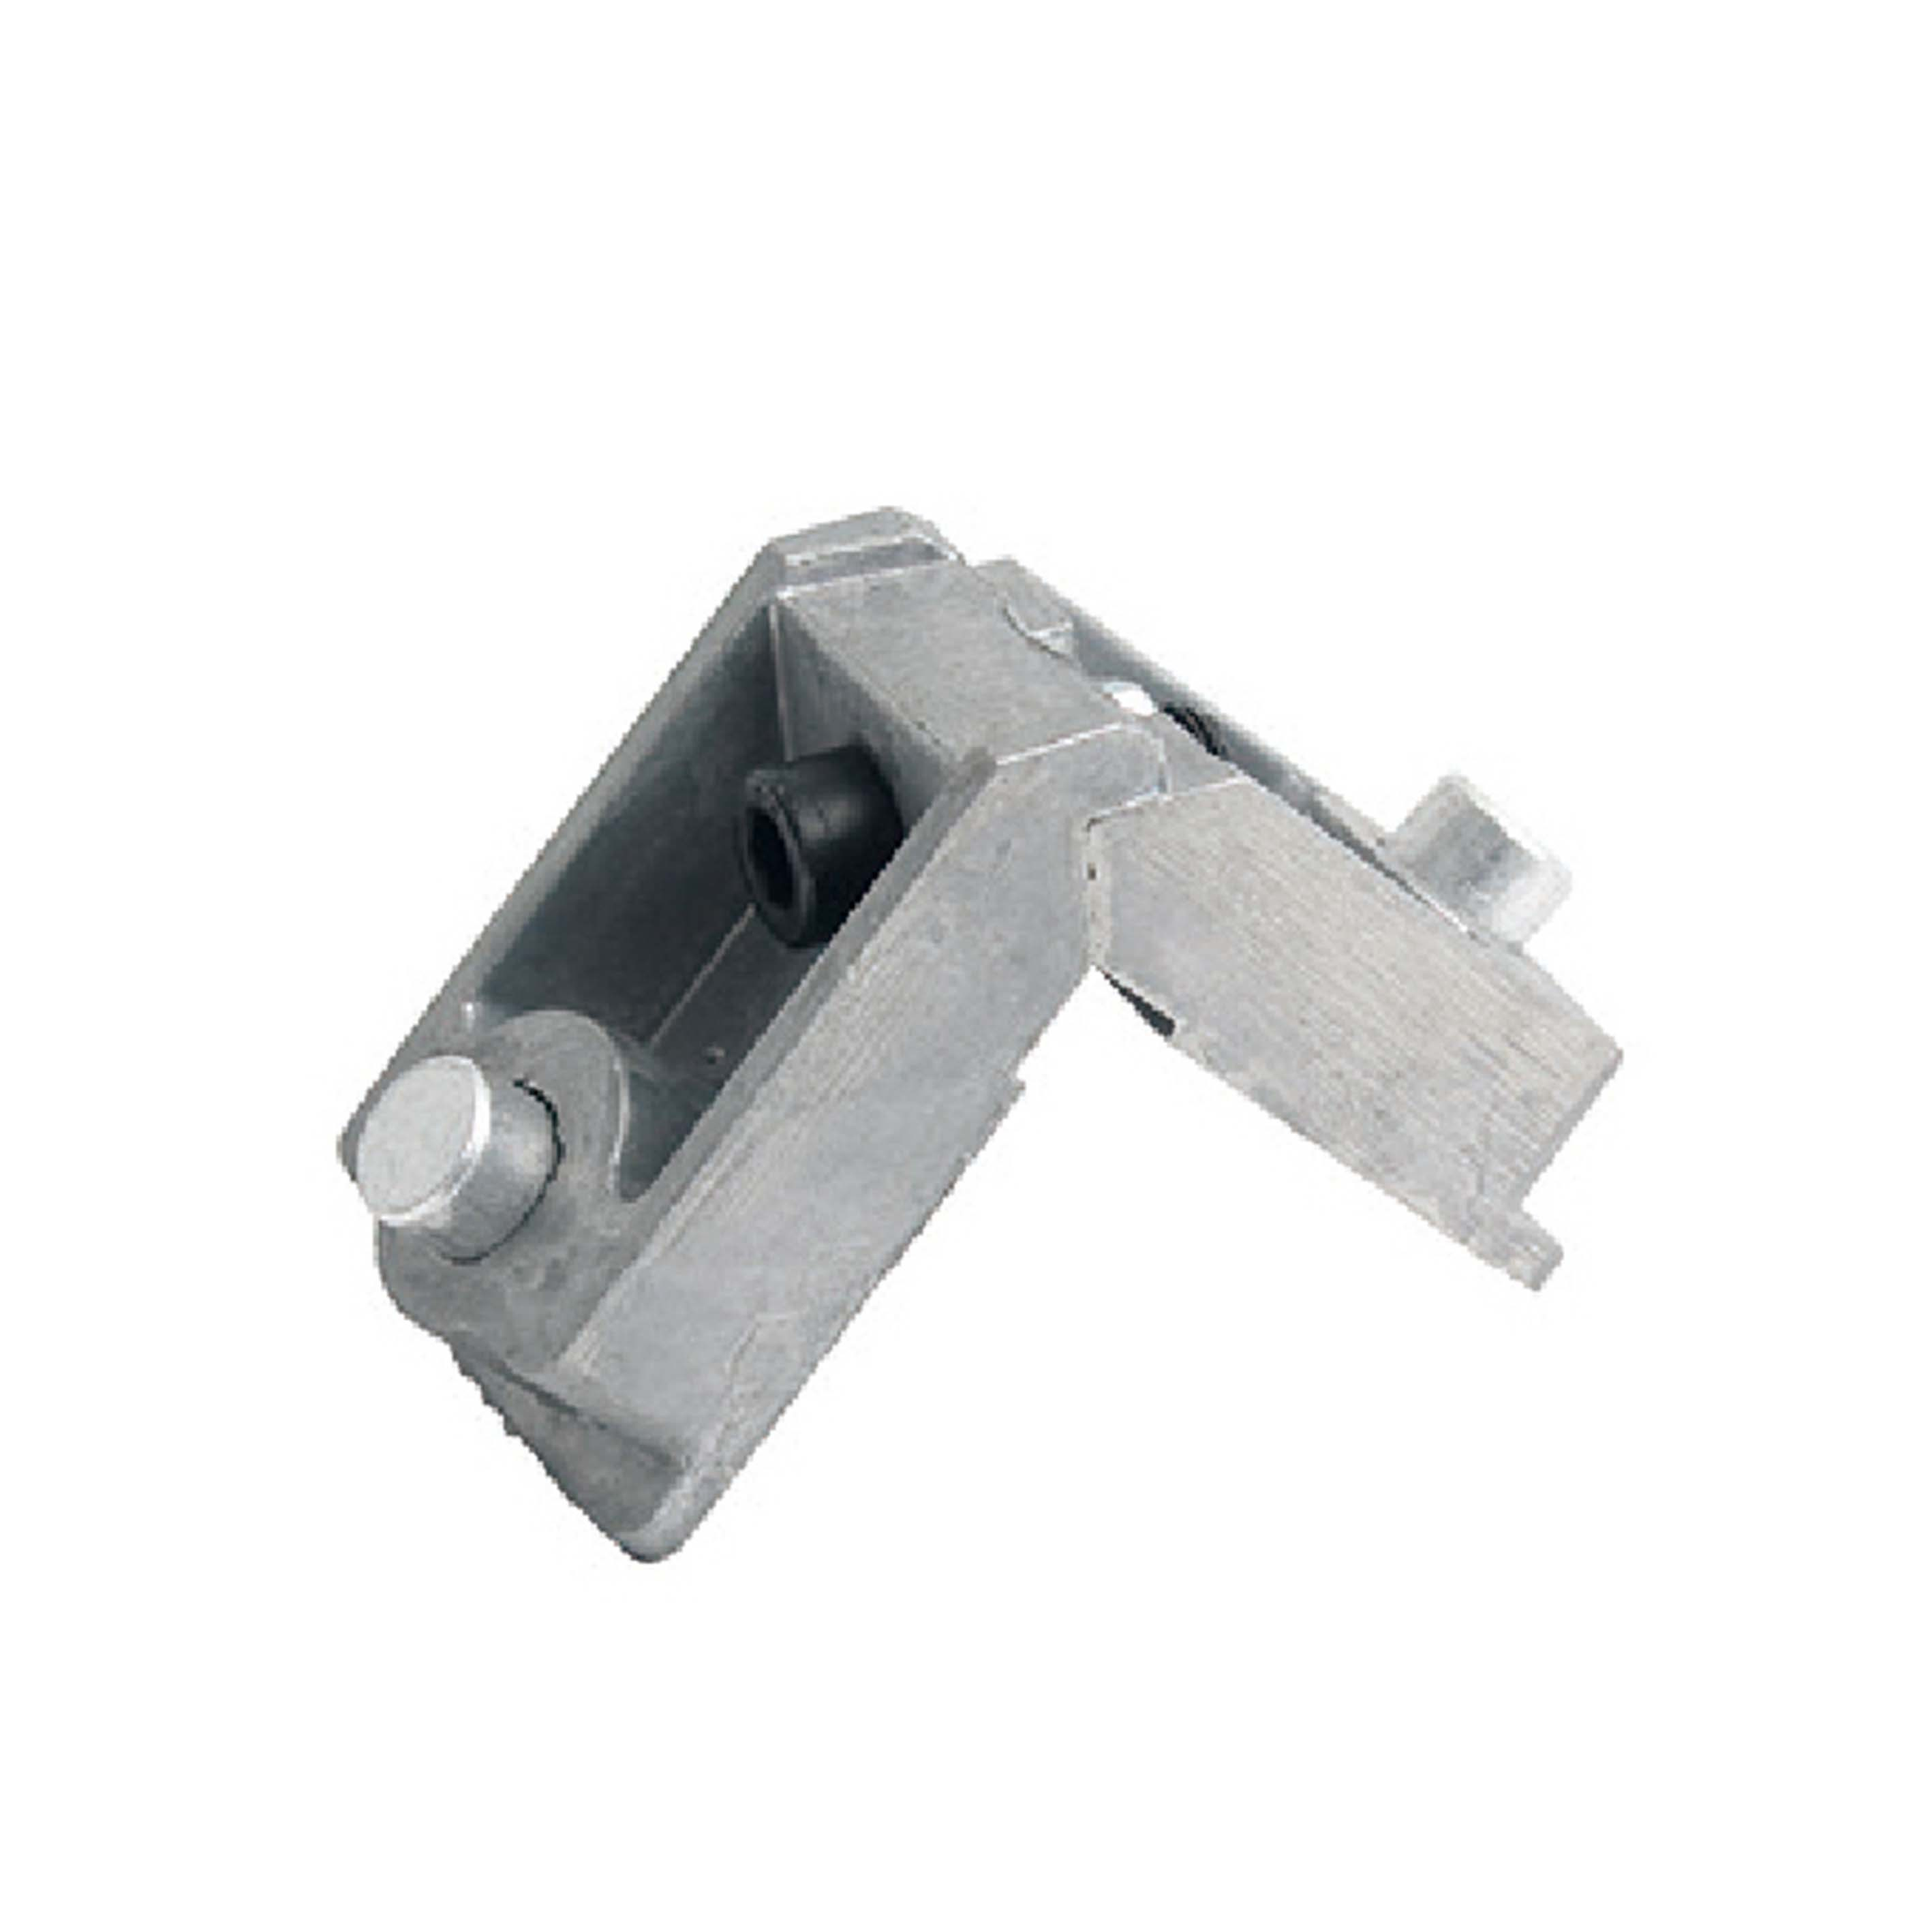 Aluminum Anodized Corner Parts Window Precision Hardware